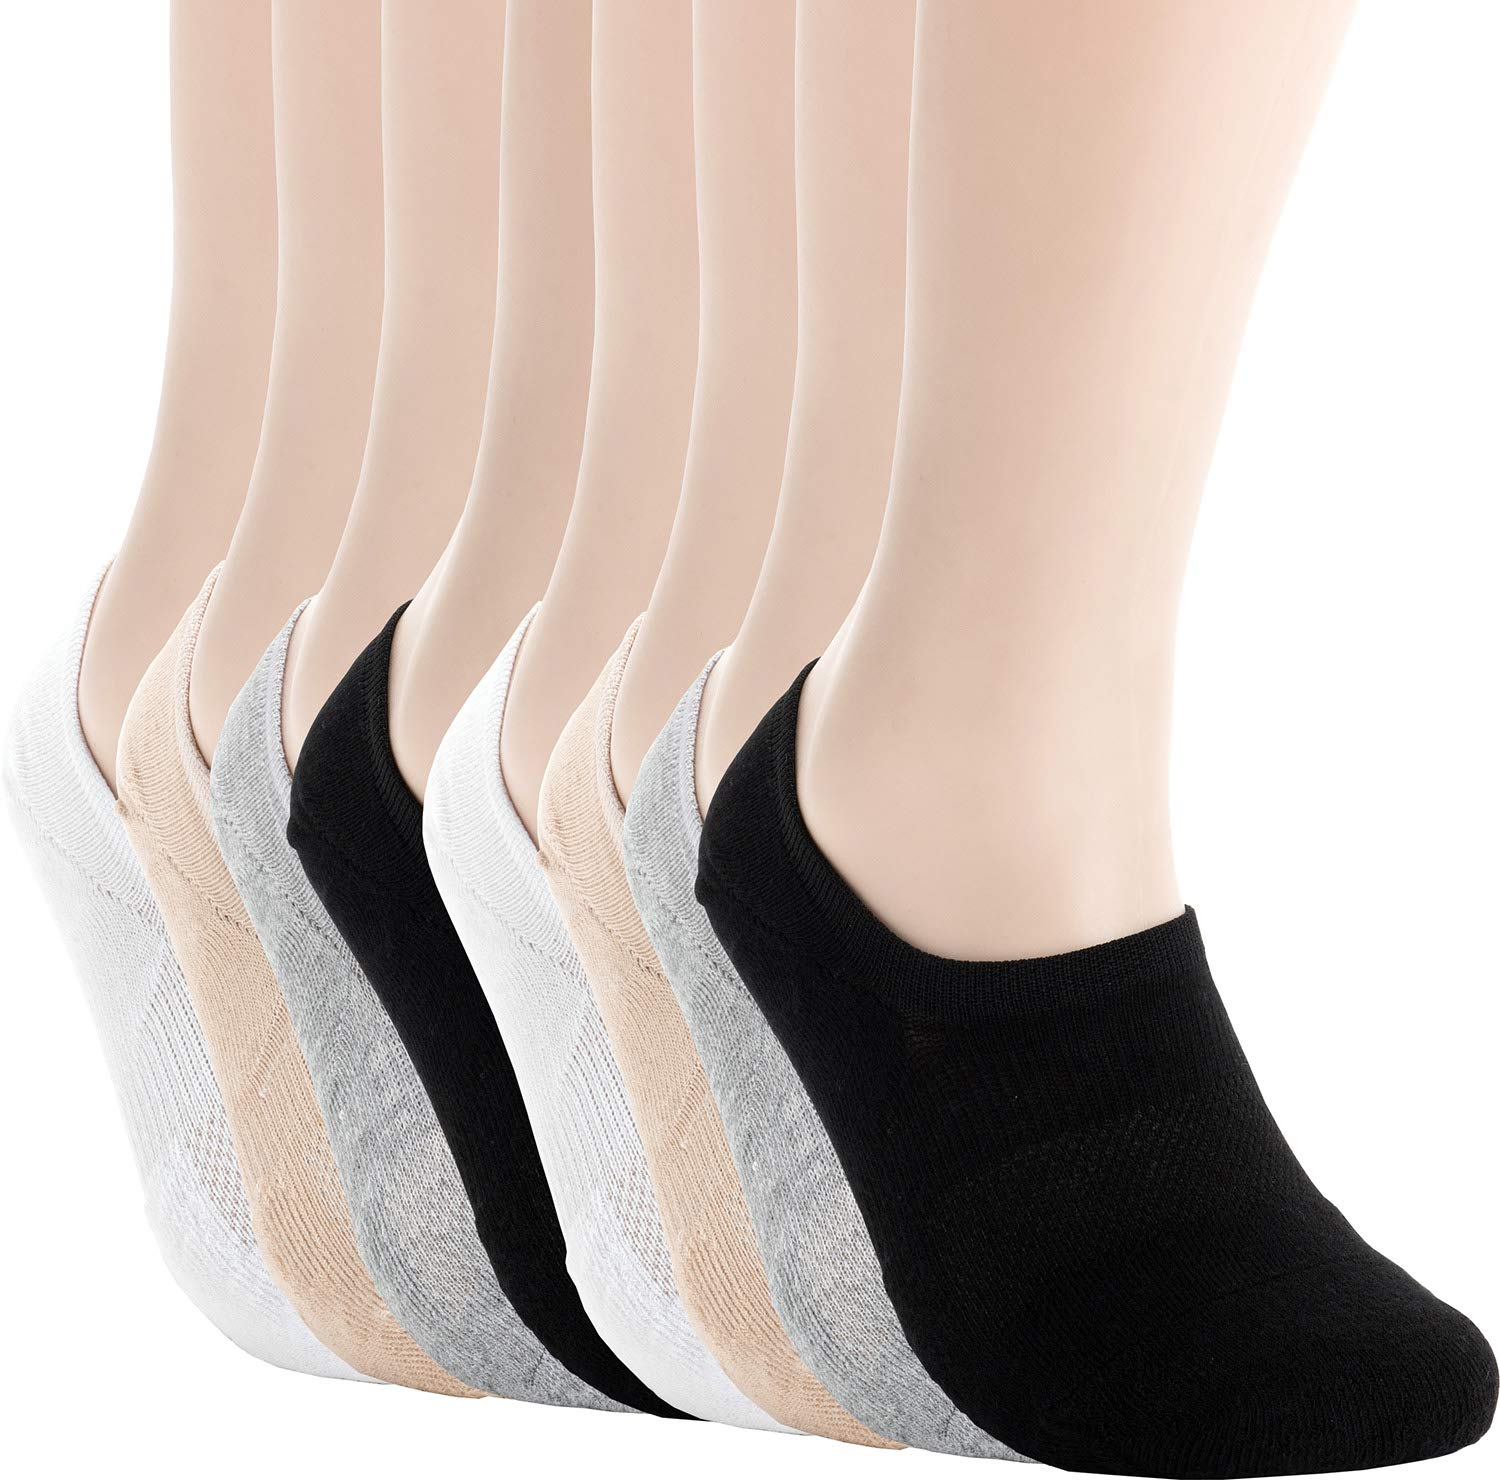 Pro Mountain Men's No Show Flat Cushion Athletic Cotton Sneakers Sports Socks (XL(US Men Shoe Size 10~12, size12), Black White Grey Beige assorted 2 each total 8 pairs Pack XL size) by Pro Mountain